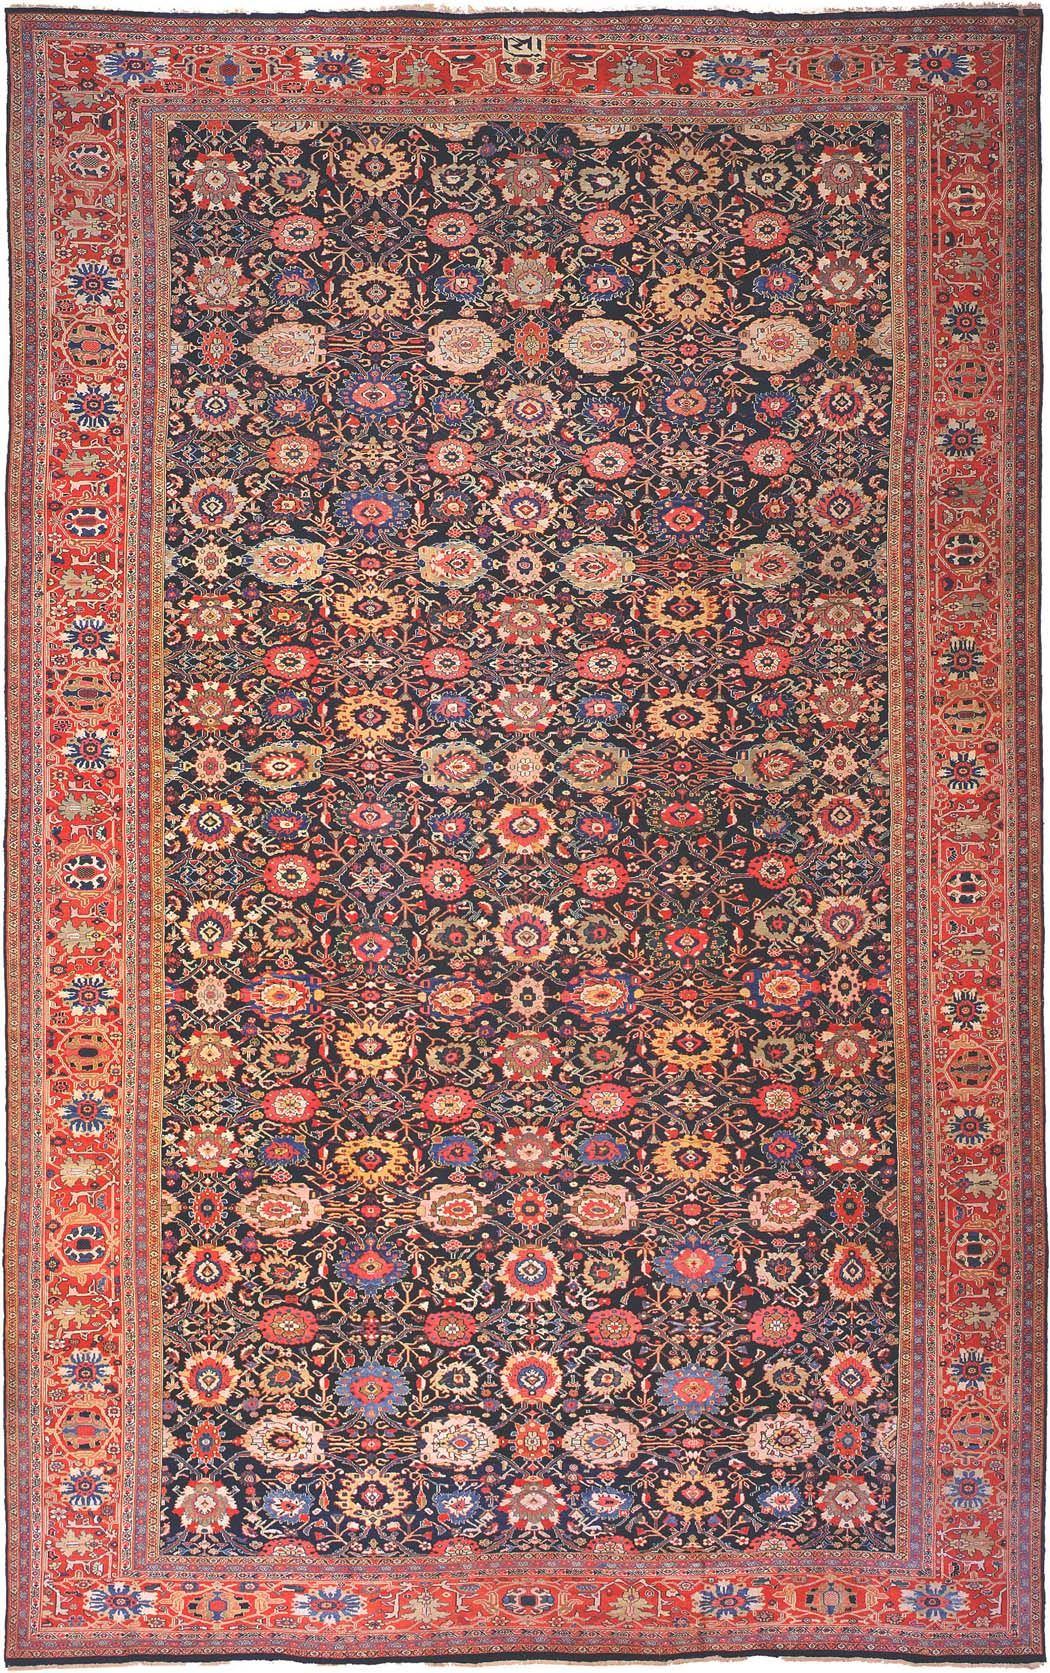 Pin de nazmiyal antique rugs en antique rugs and carpets for Alfombras orientales